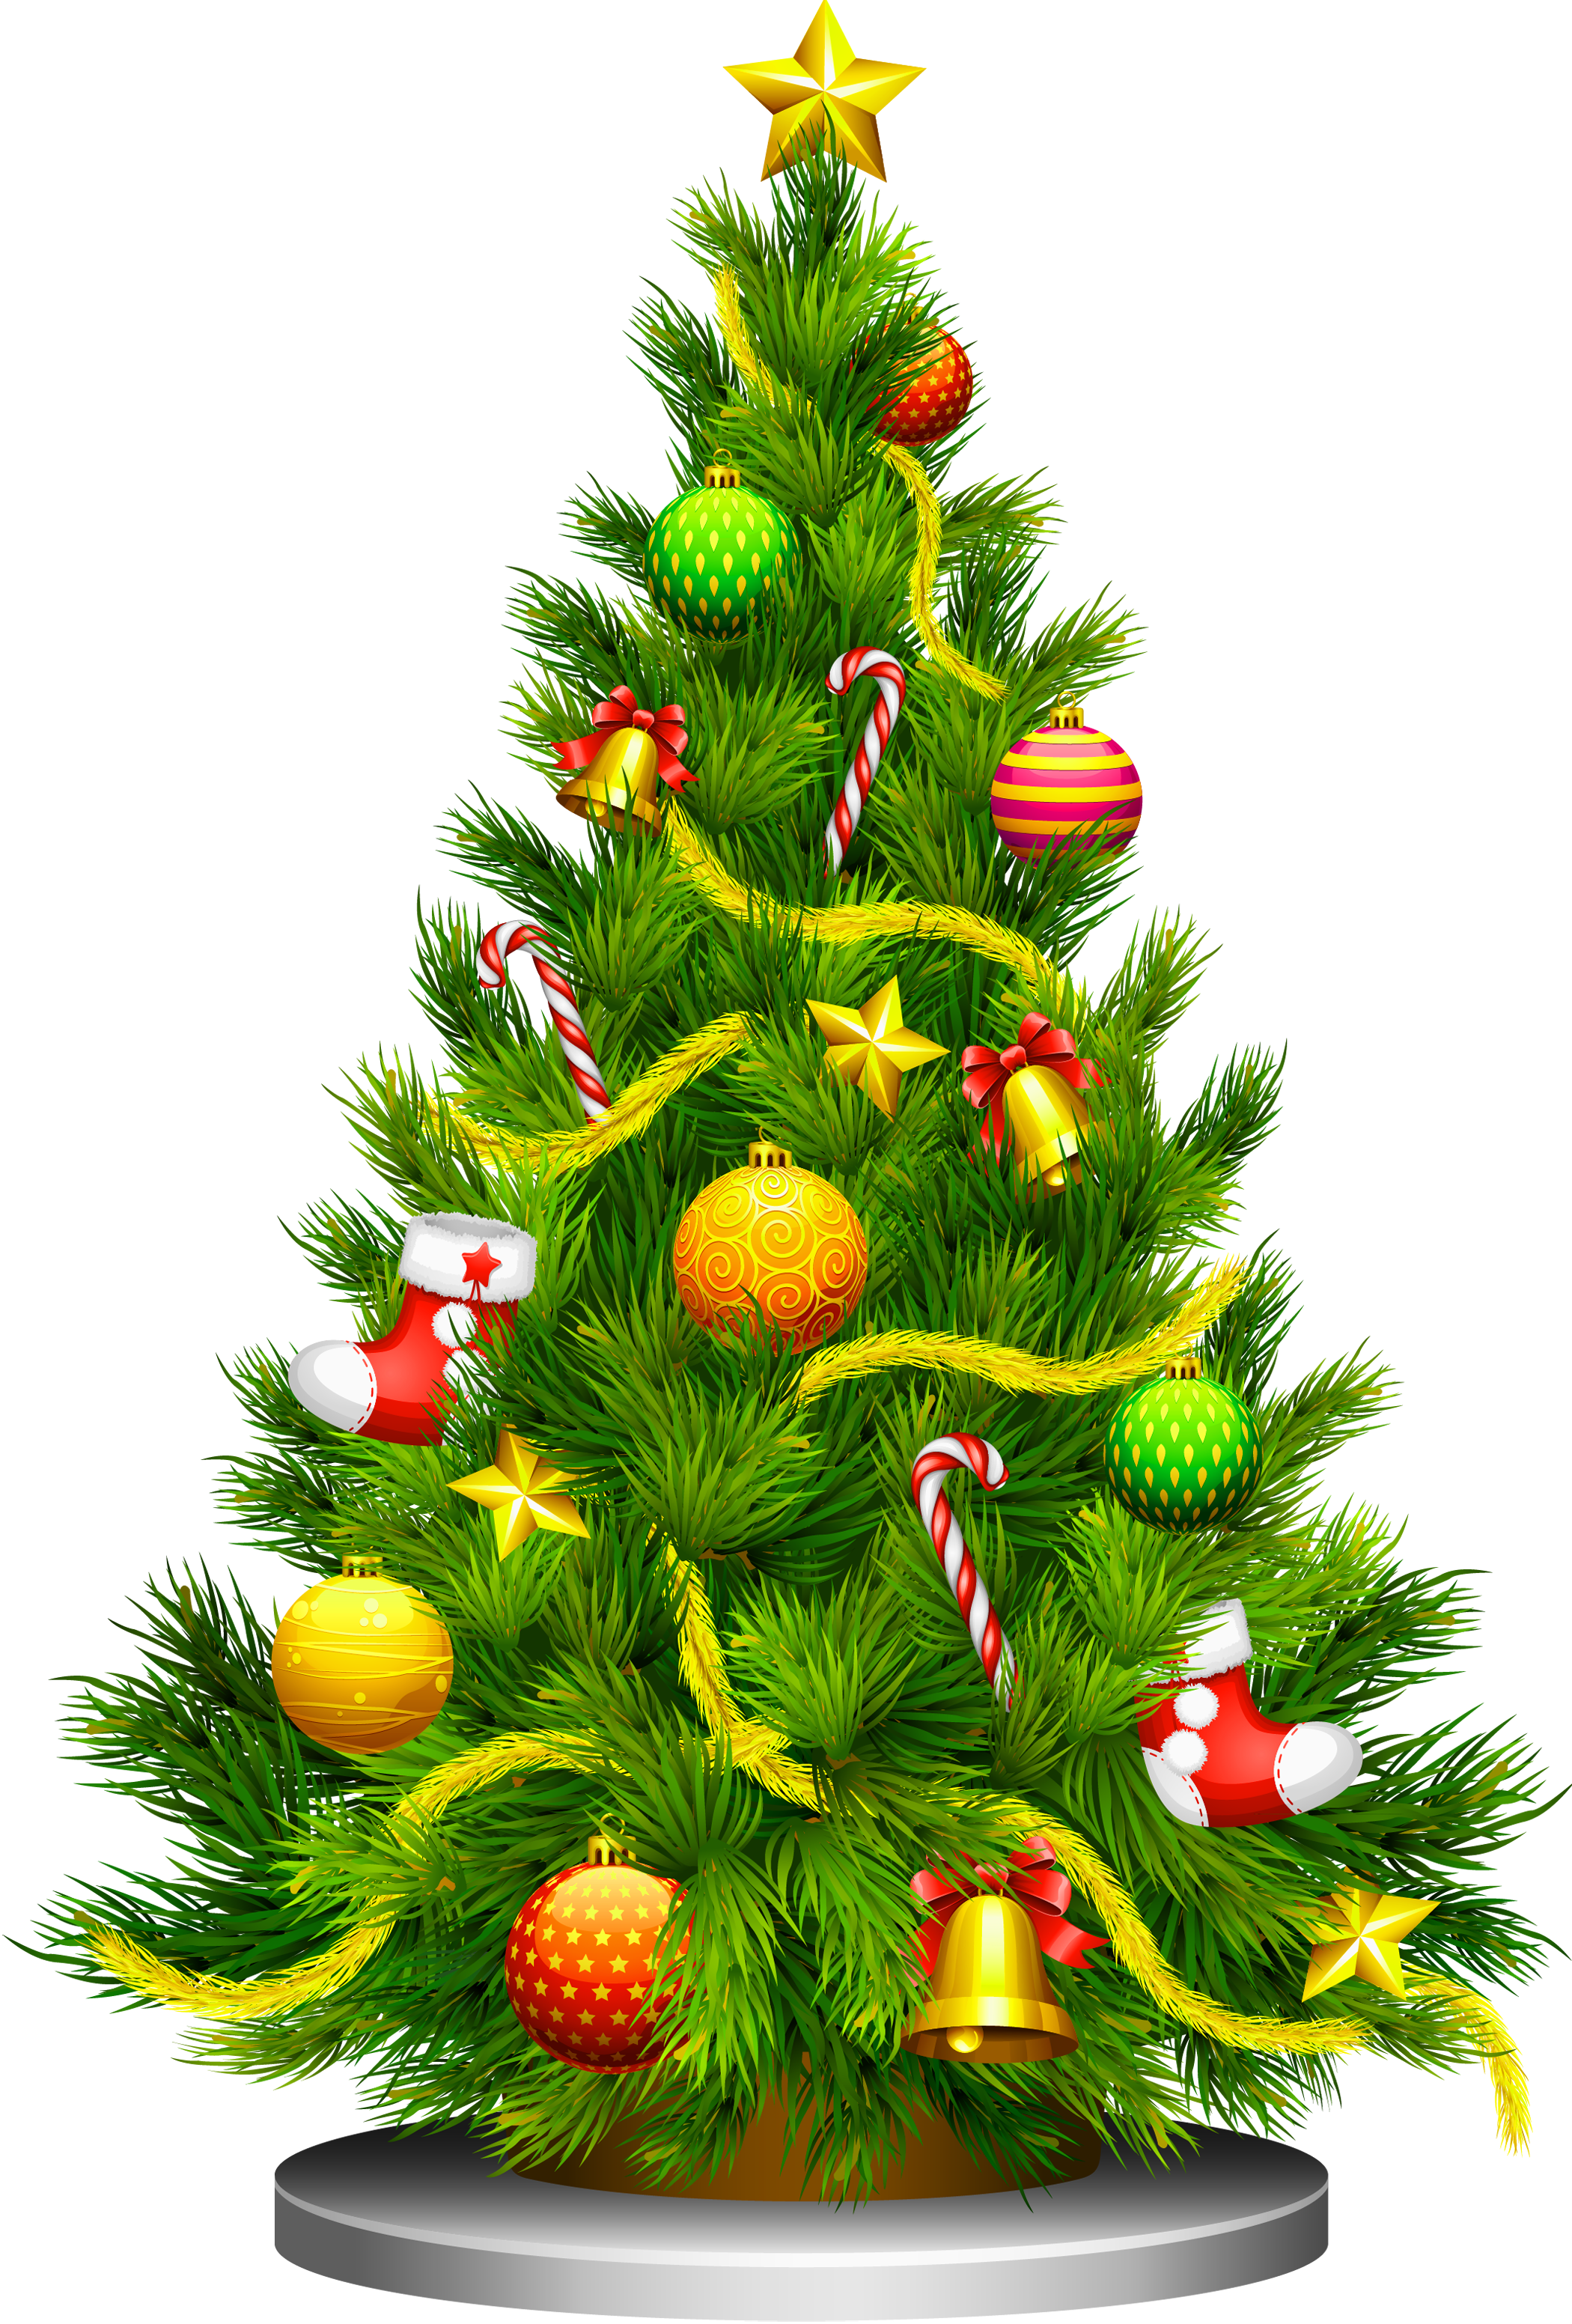 Christmas Tree Free Large Images Christmas Tree Clipart Christmas Tree With Presents Christmas Tree Images